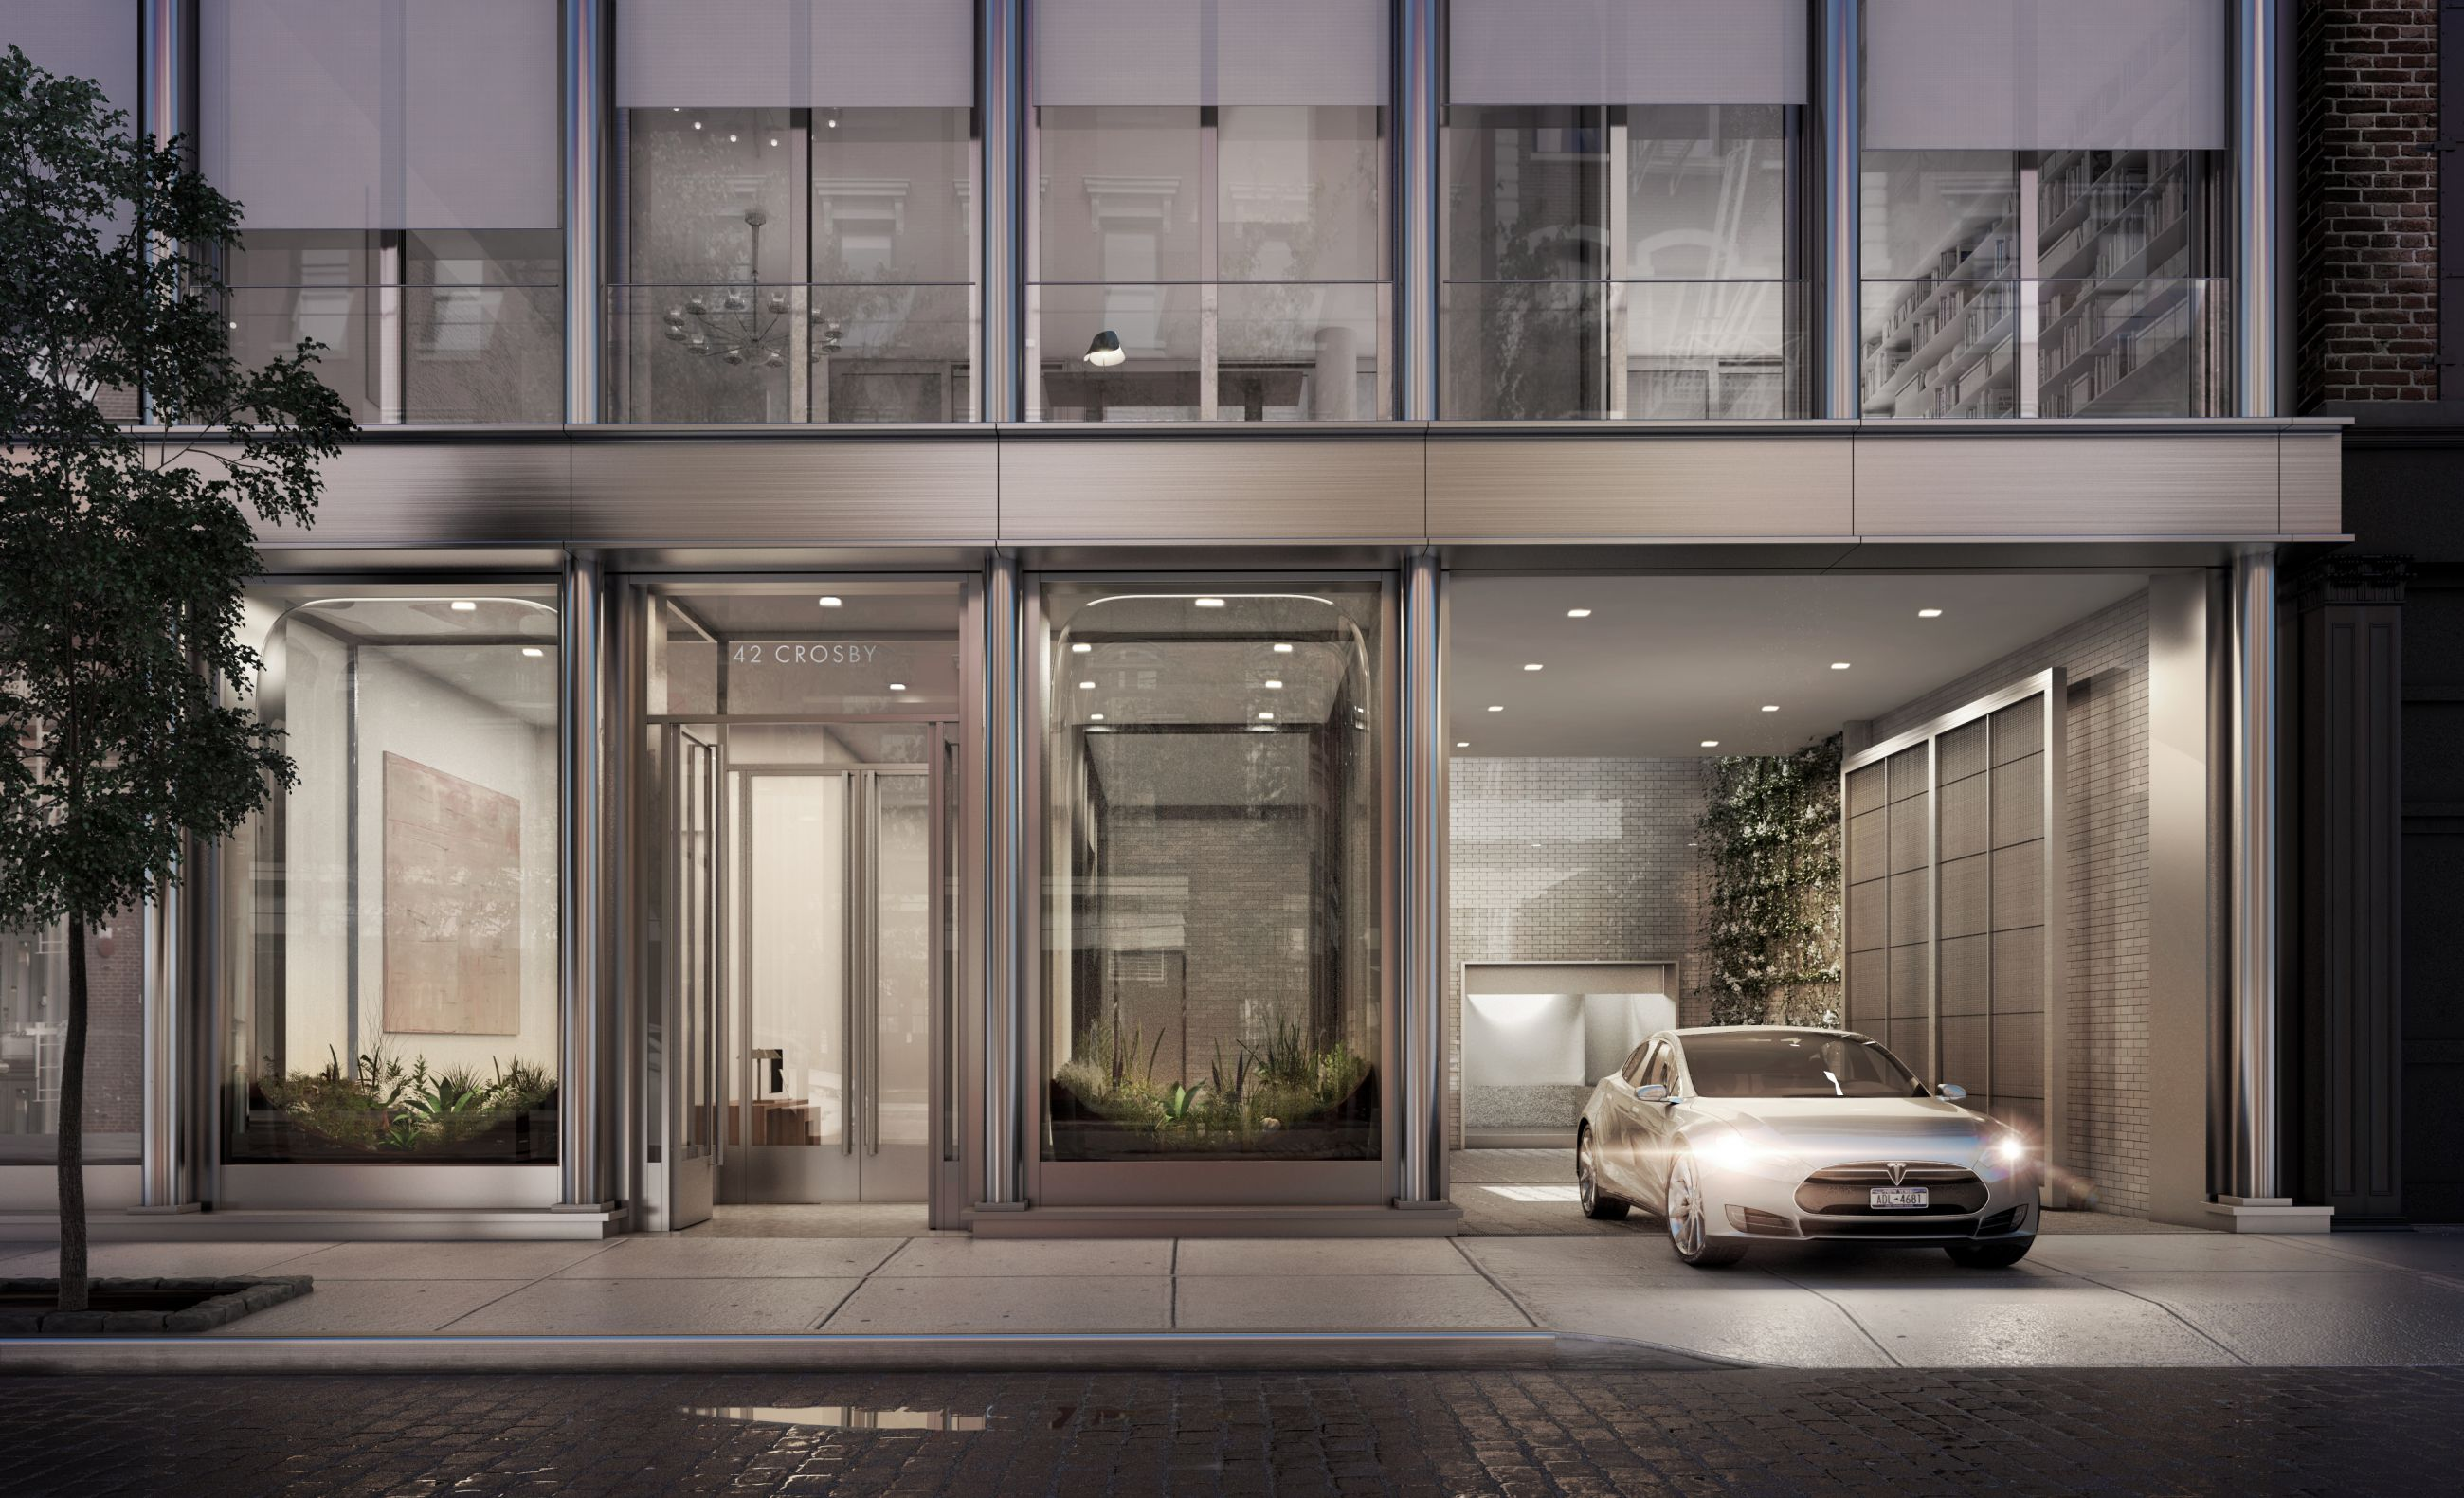 42 Crosby Street  Selldorf Architects  New York